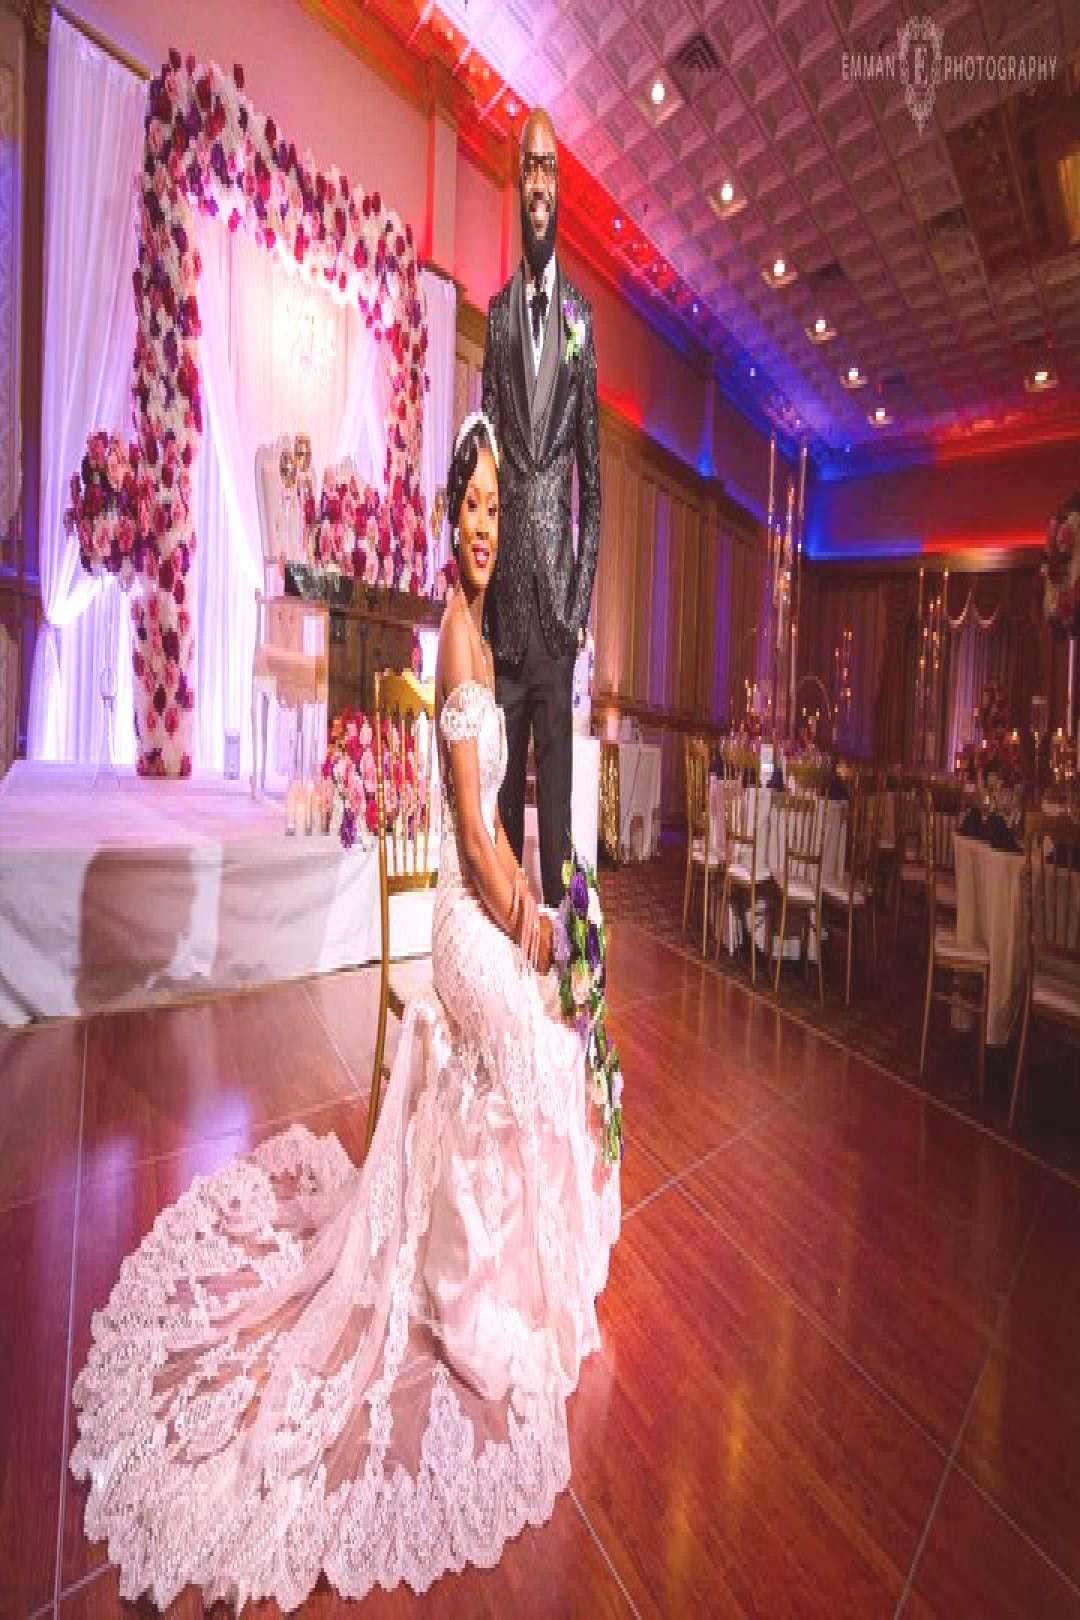 #eventplanners #videographer #photographer #theudekwes #042nwanne #planner #event #de #TheUdekwes #042Nwanne Videographer Photographer Event Planner DeYou can find Event planners and more on our website.#TheUdekwes #042Nwanne...